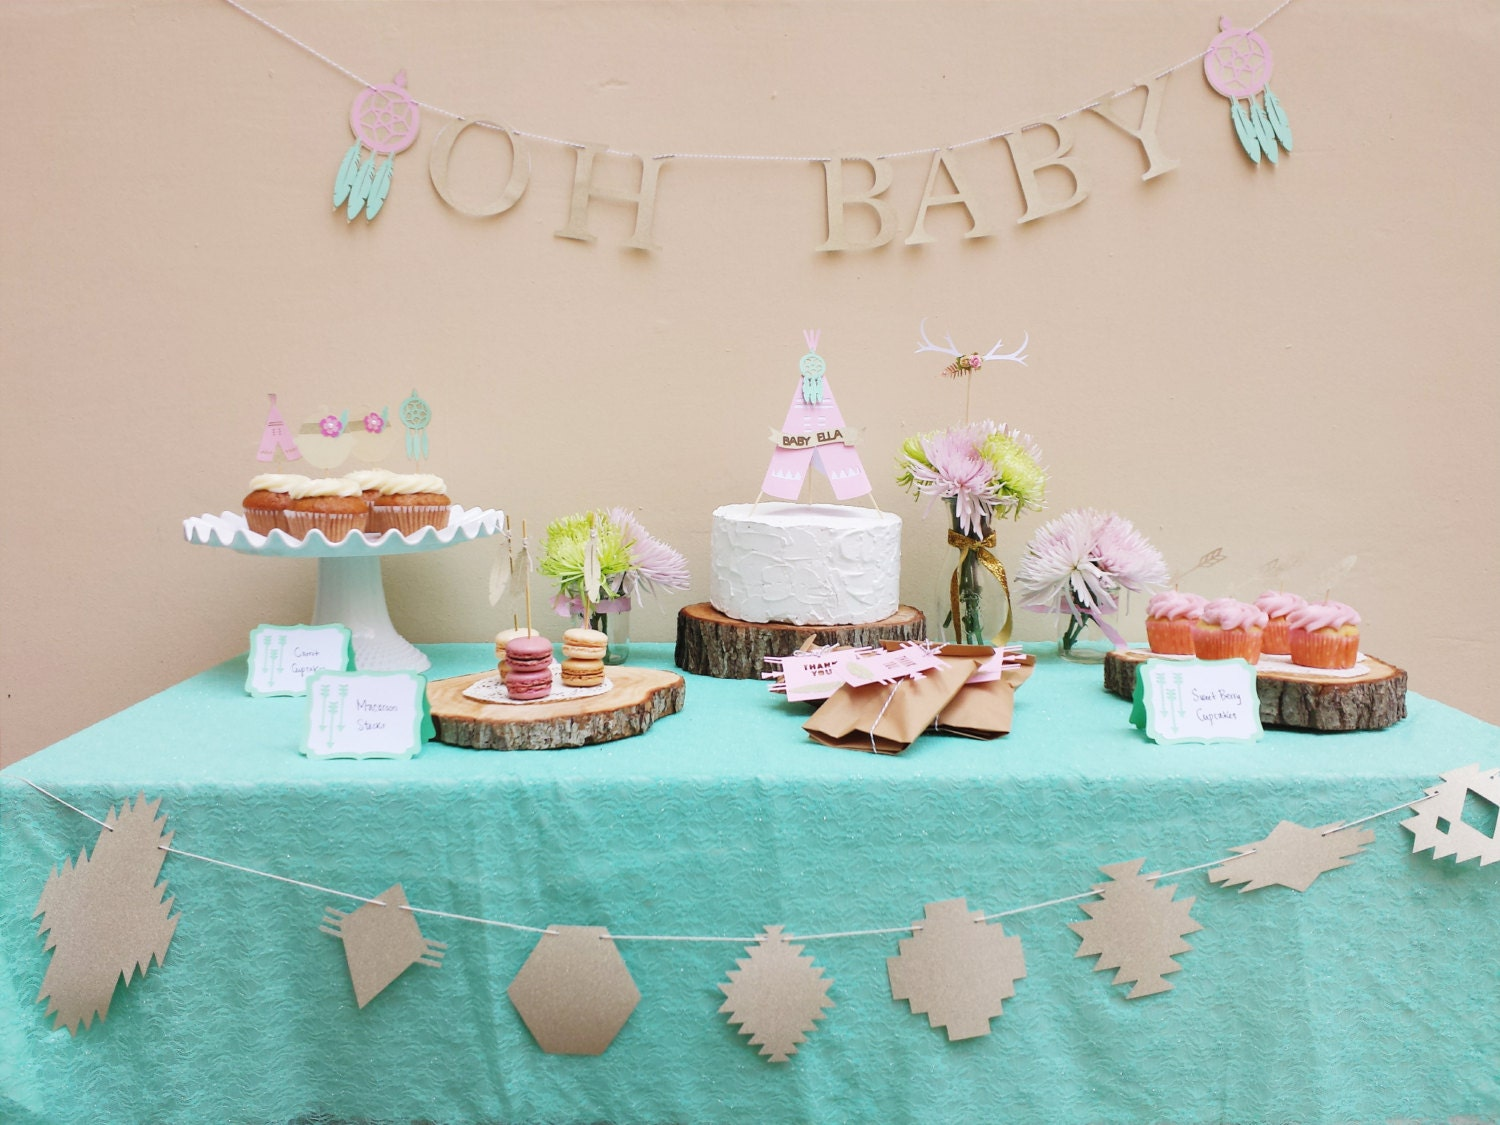 Boho Baby Shower Centerpieces ~ Boho chic baby shower decorations package southwestern